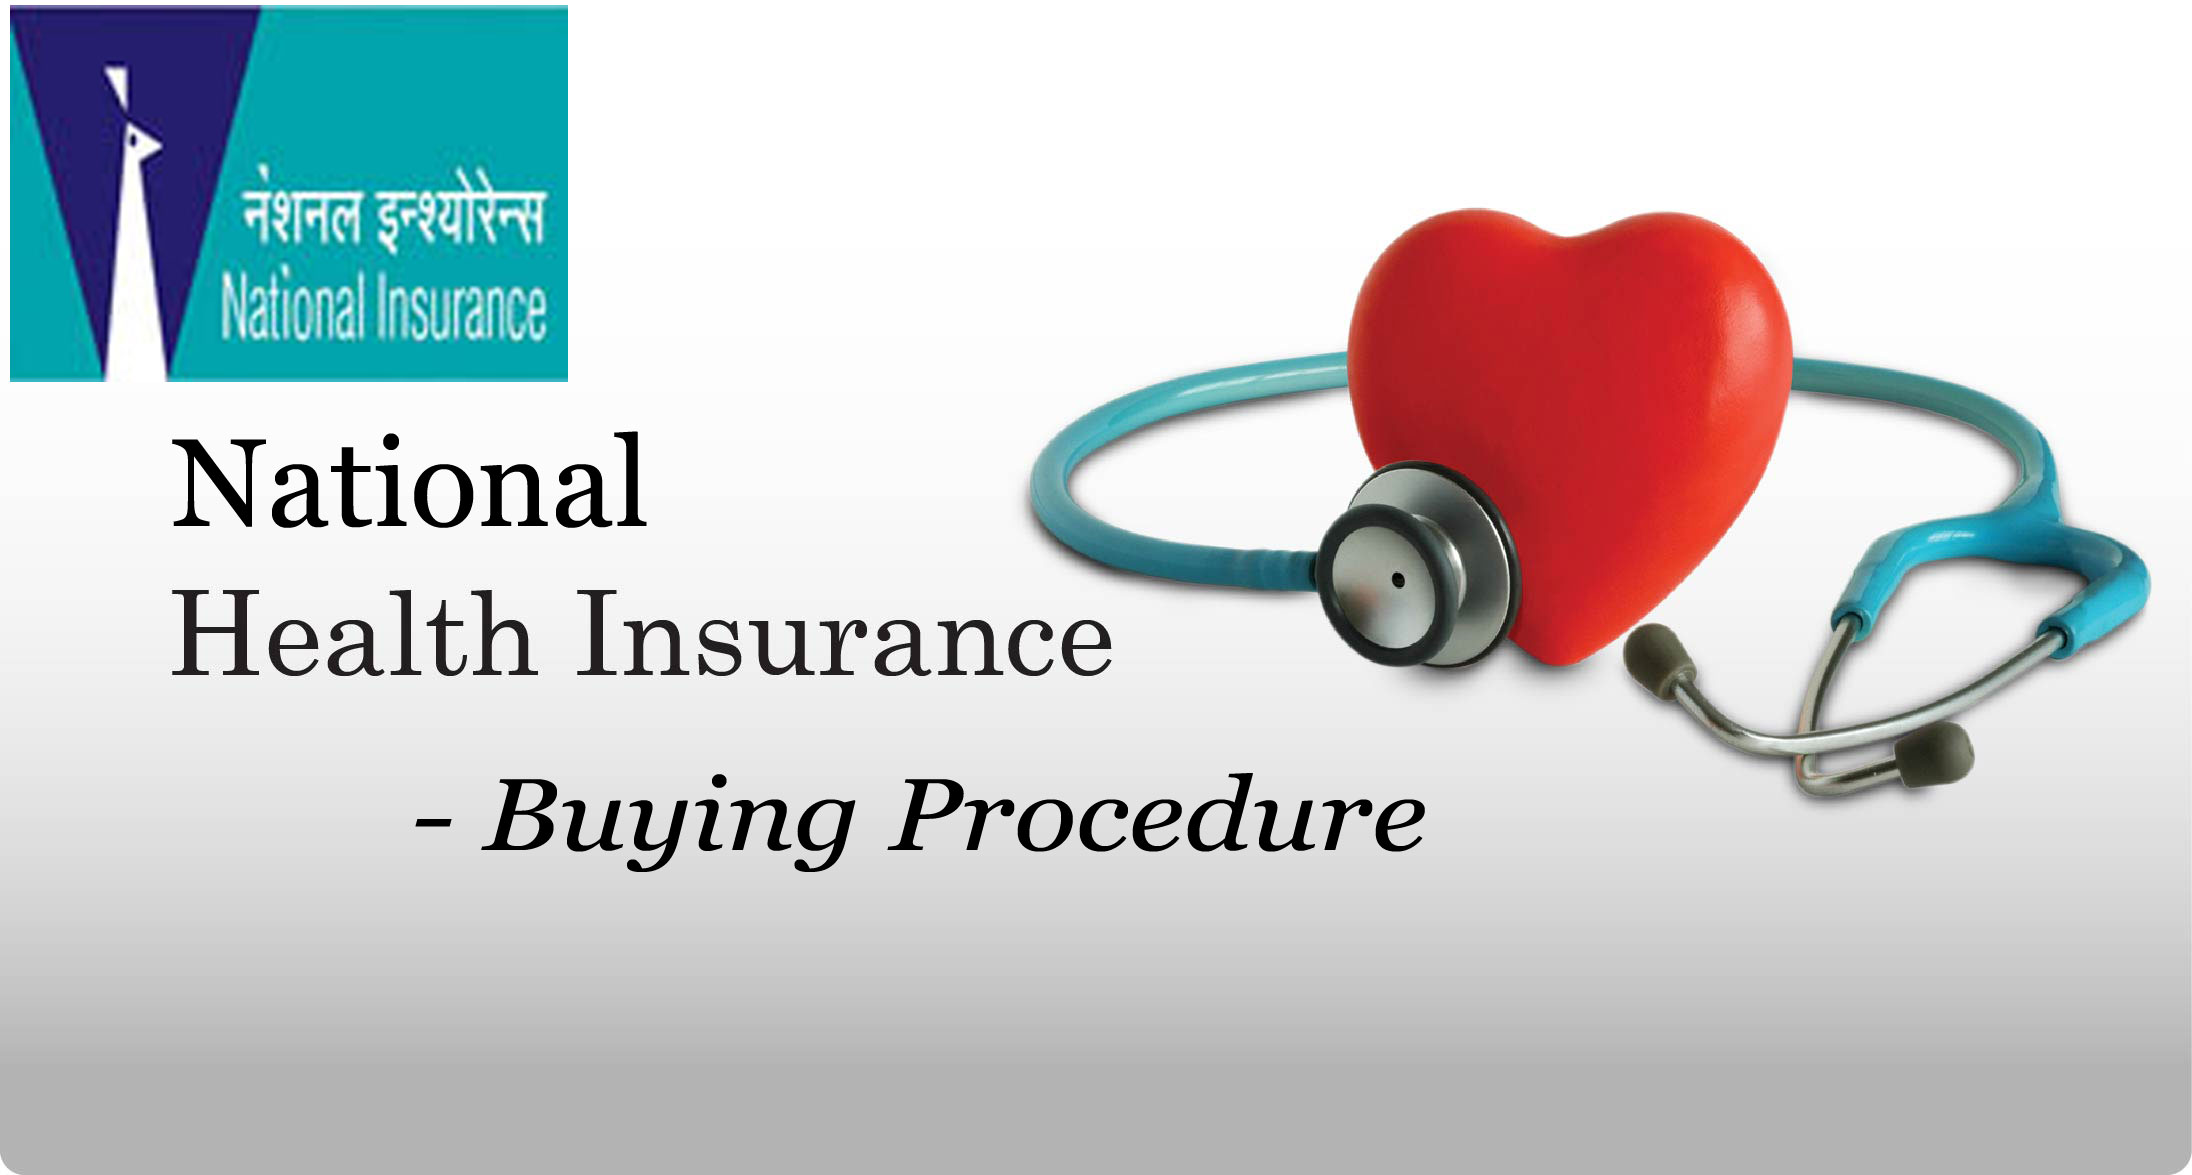 national health insurance The national health insurance authority (nhia) was established under the national health insurance act 2003, act 650, as a body corporate, with perpetual succession, an official seal, that may sue and be sued in its own name.